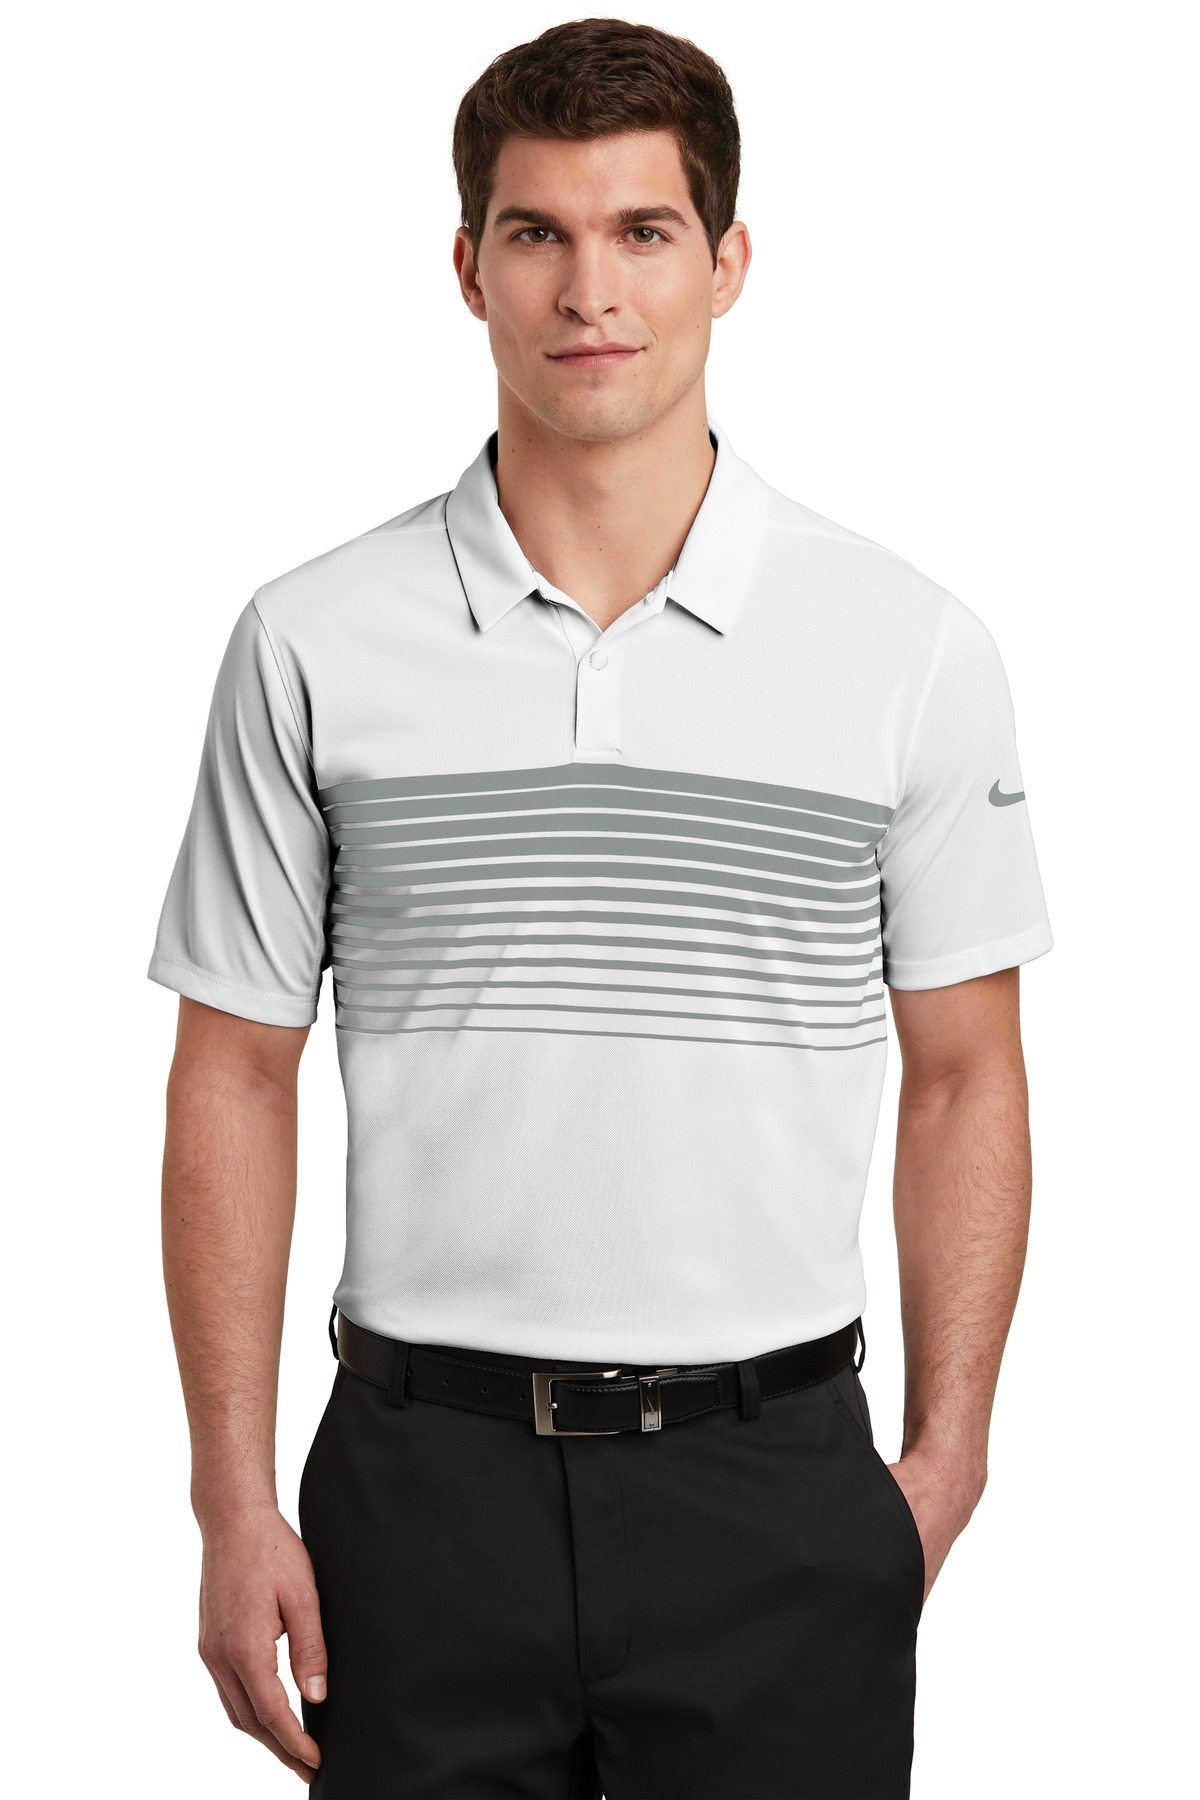 Nike Dri-FIT Chest Stripe Polo. NKAA1855